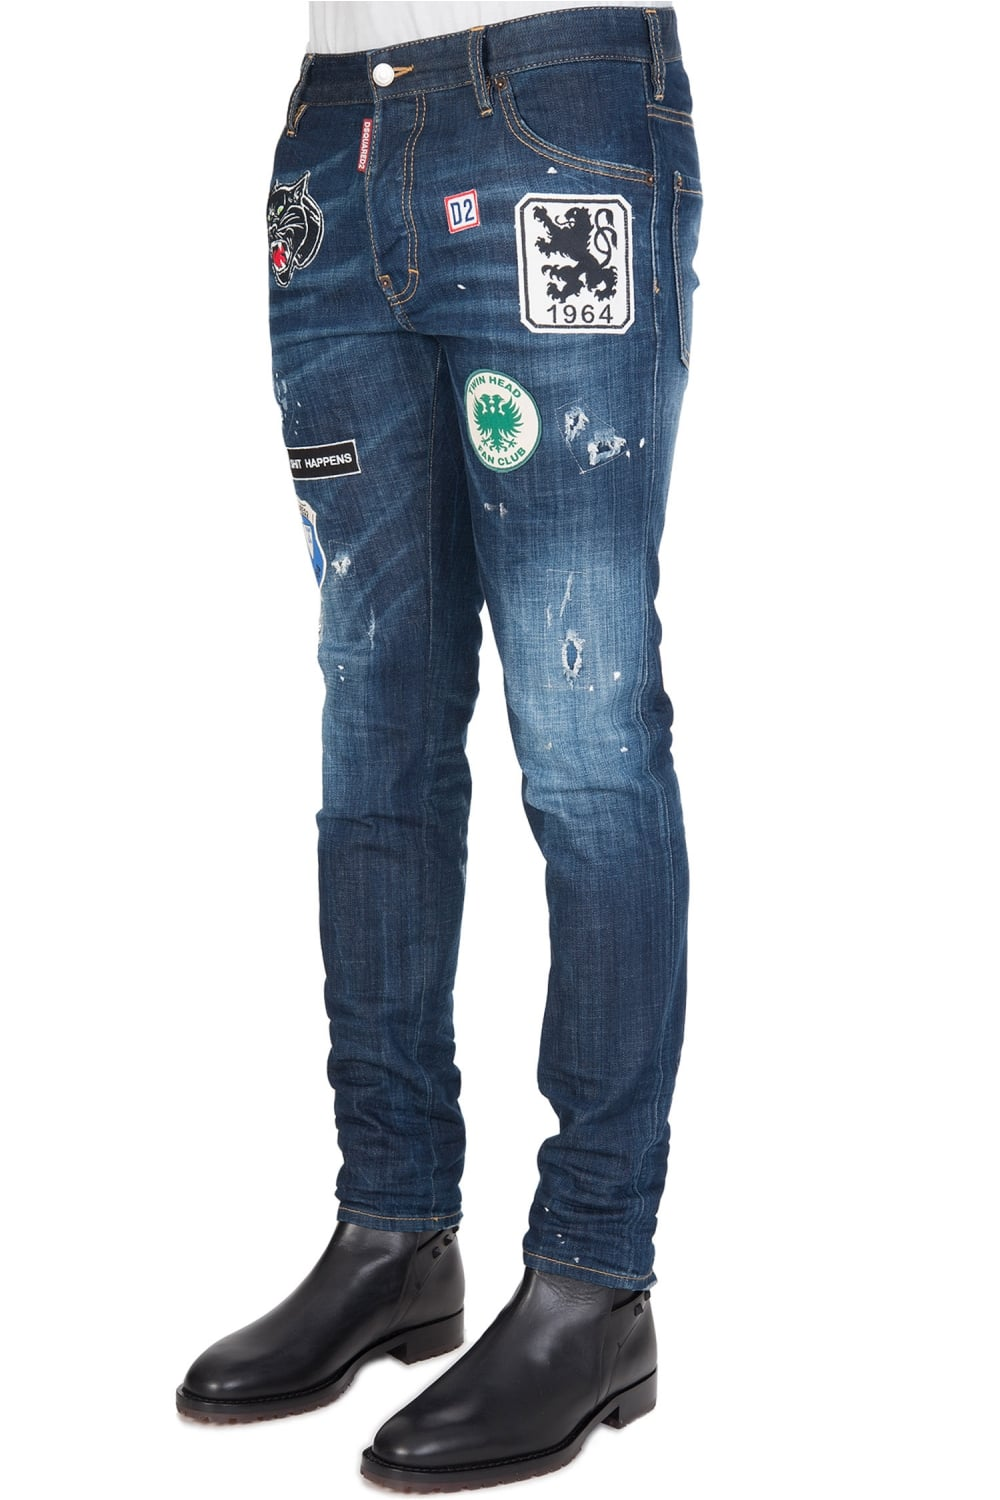 Dsquared Cool Guy Patch Jeans Blue